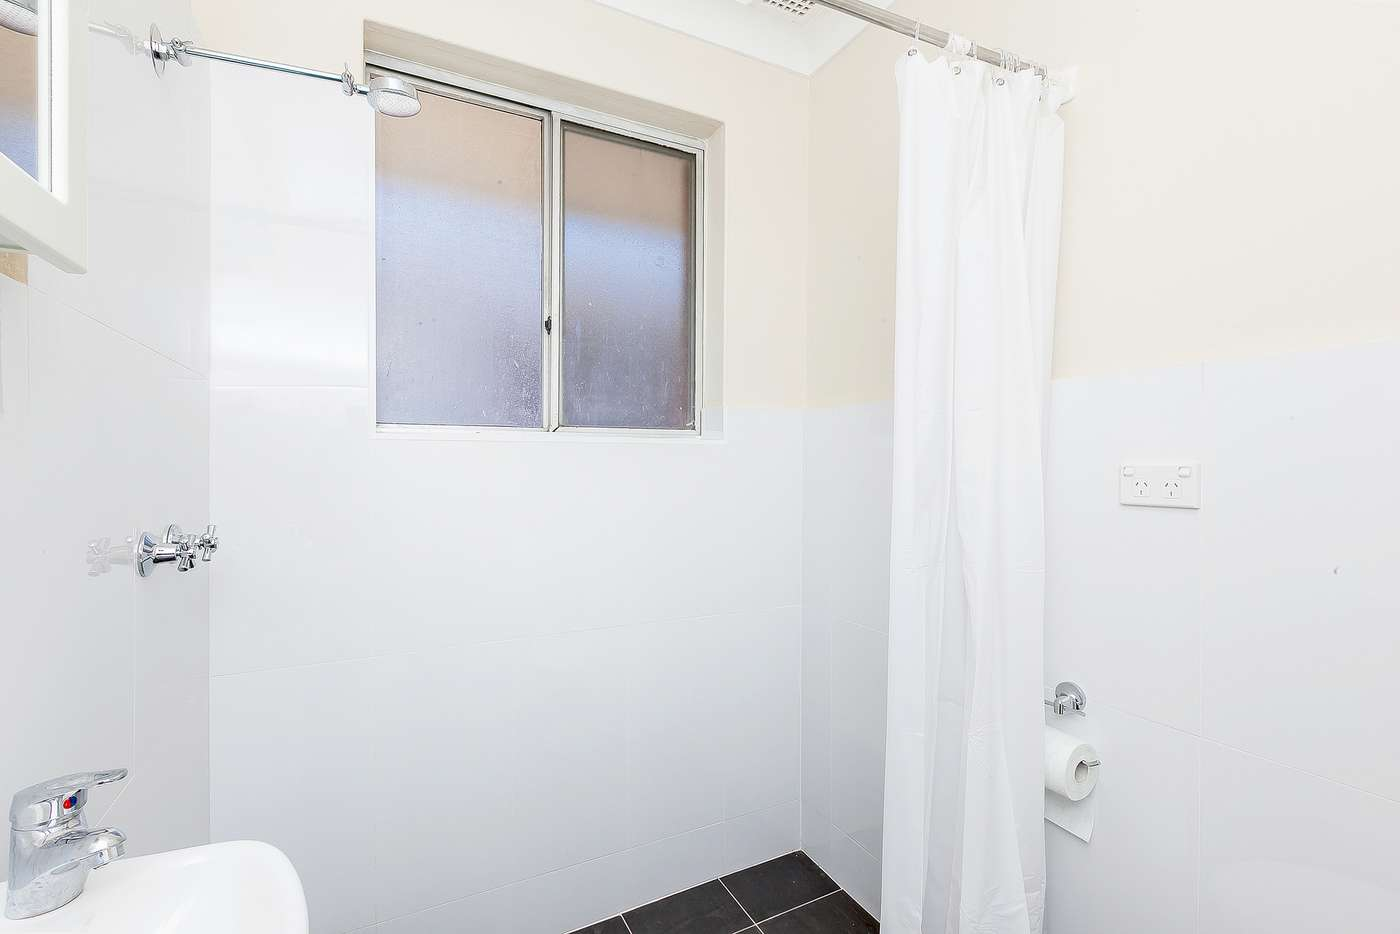 Sixth view of Homely apartment listing, 6/14 Willeroo Street, Lakemba NSW 2195